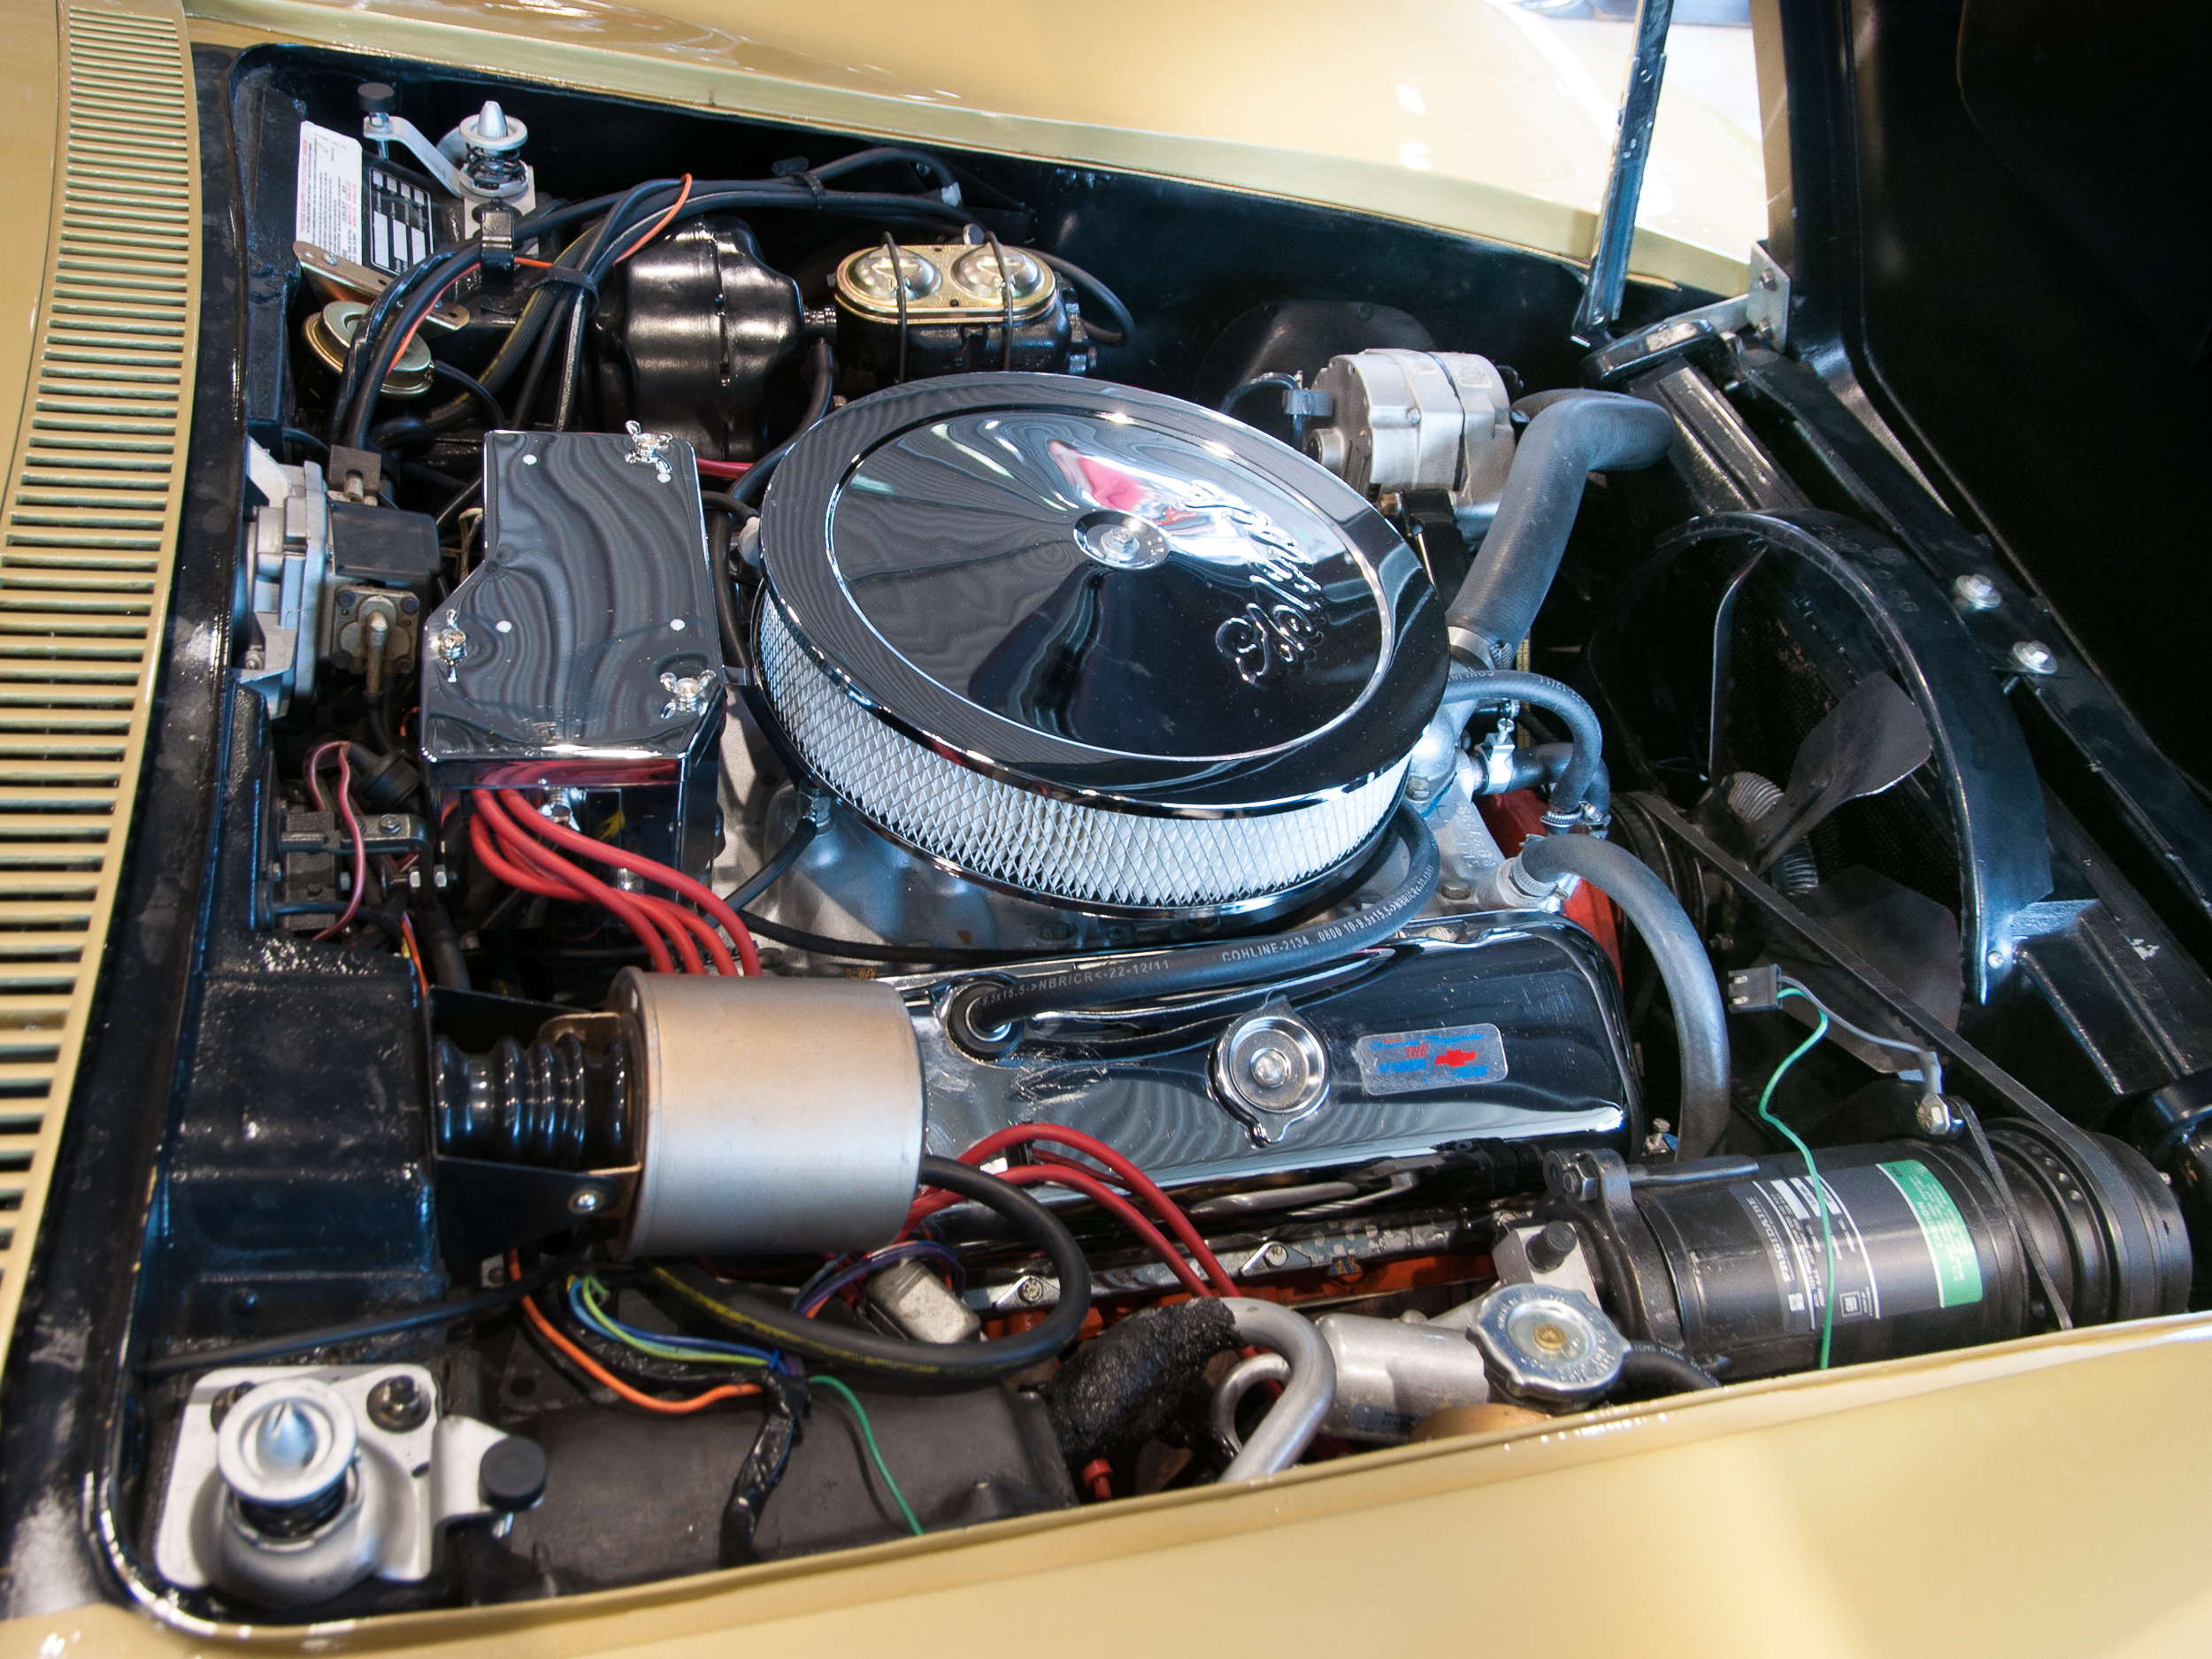 350 chevy engine diagram online kenwood model kdc wiring 1977 corvette compartment pictures to pin on pinterest - pinsdaddy